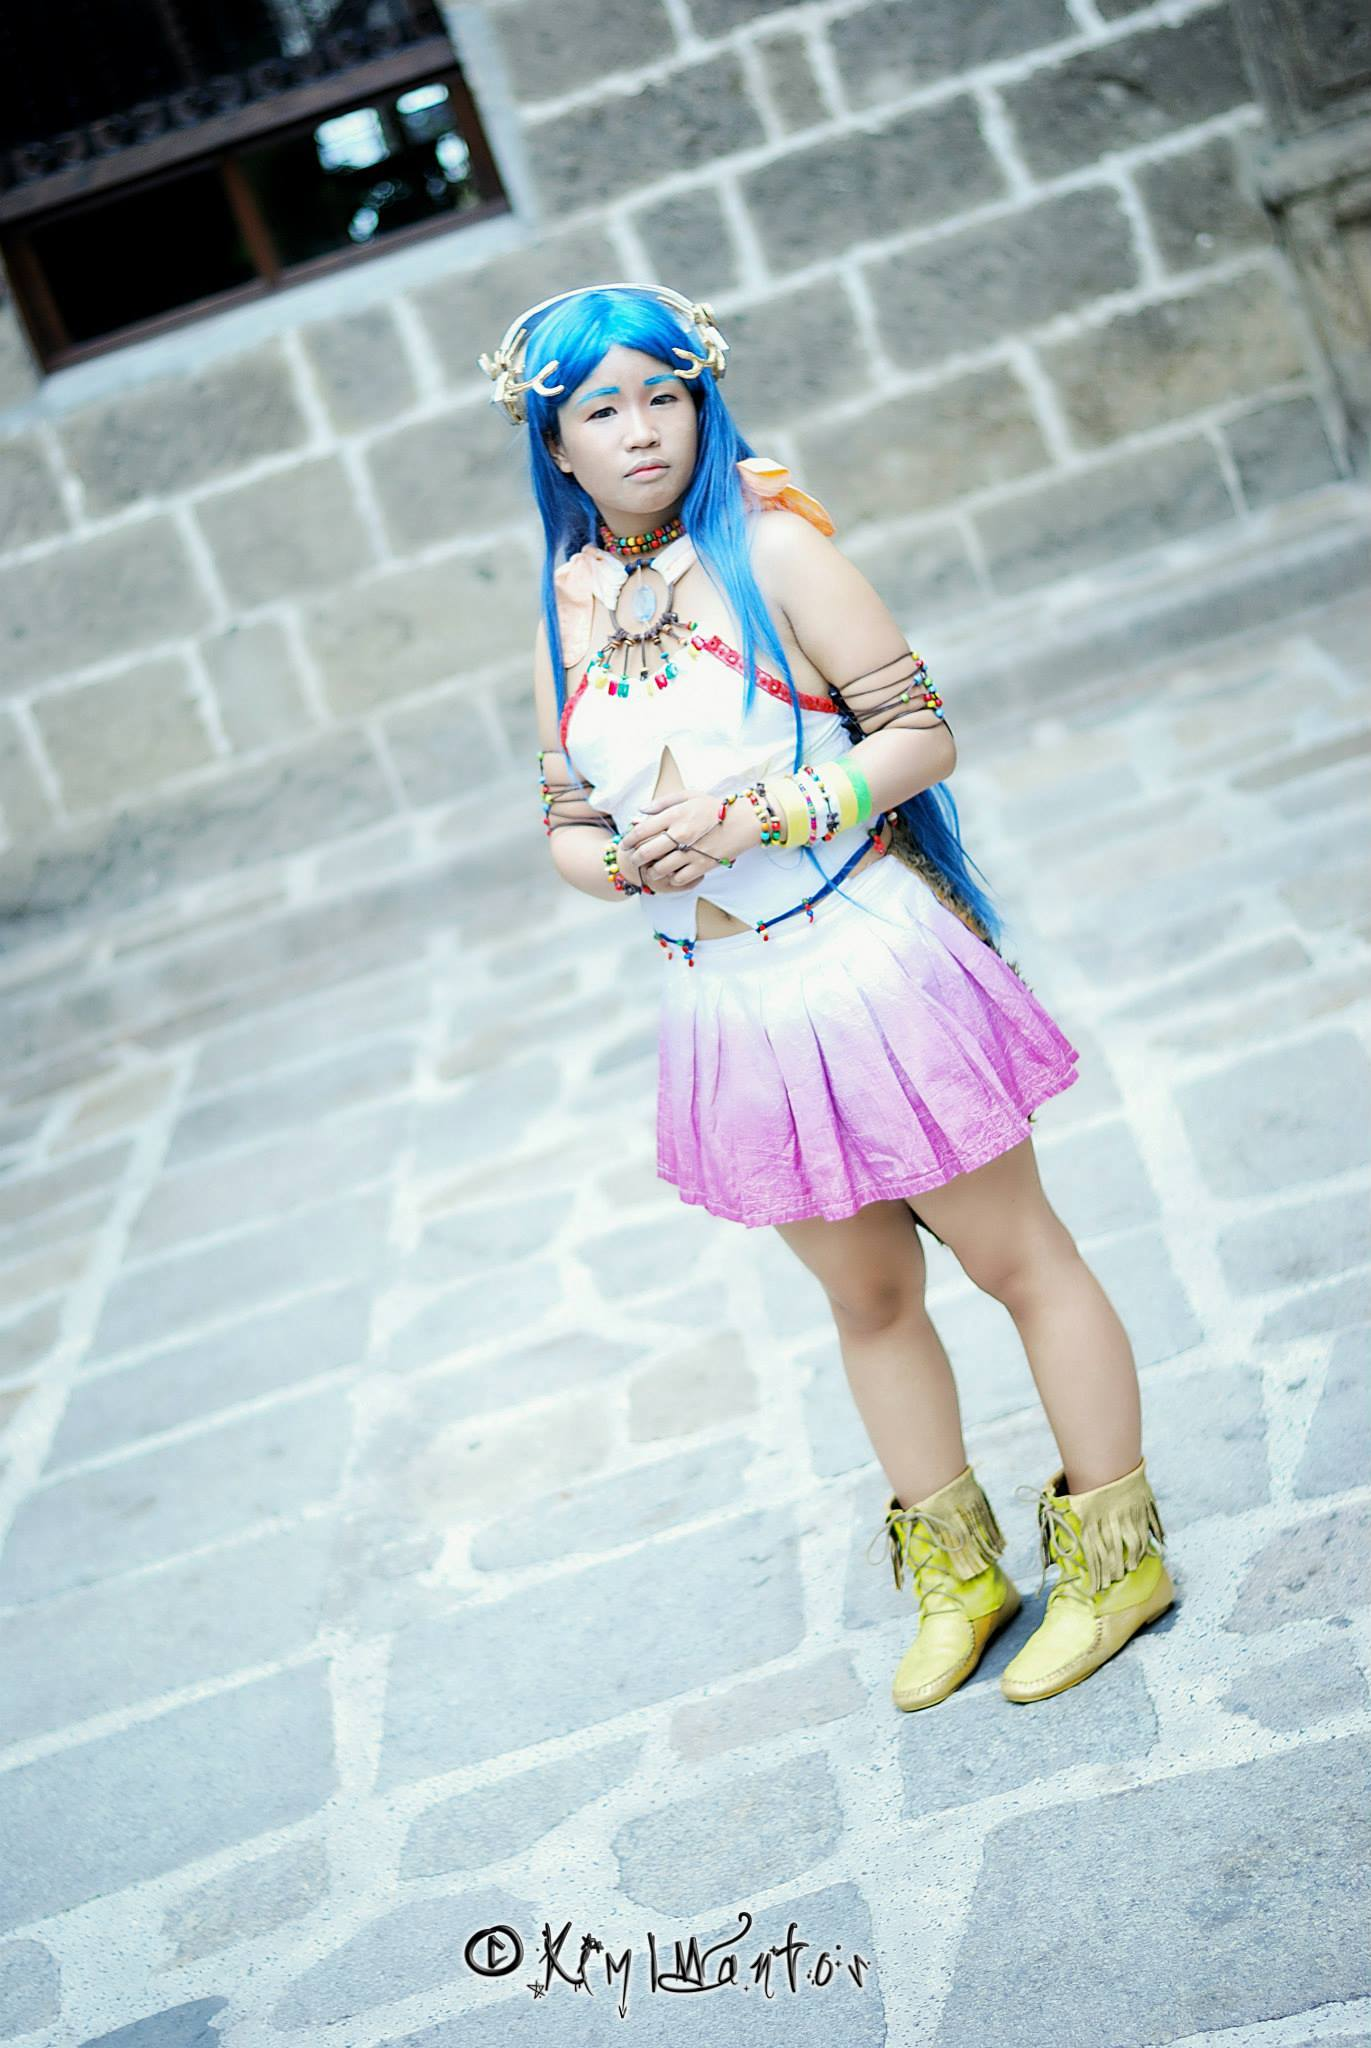 Yeul Final Fantasy XIII-2 Cosplay